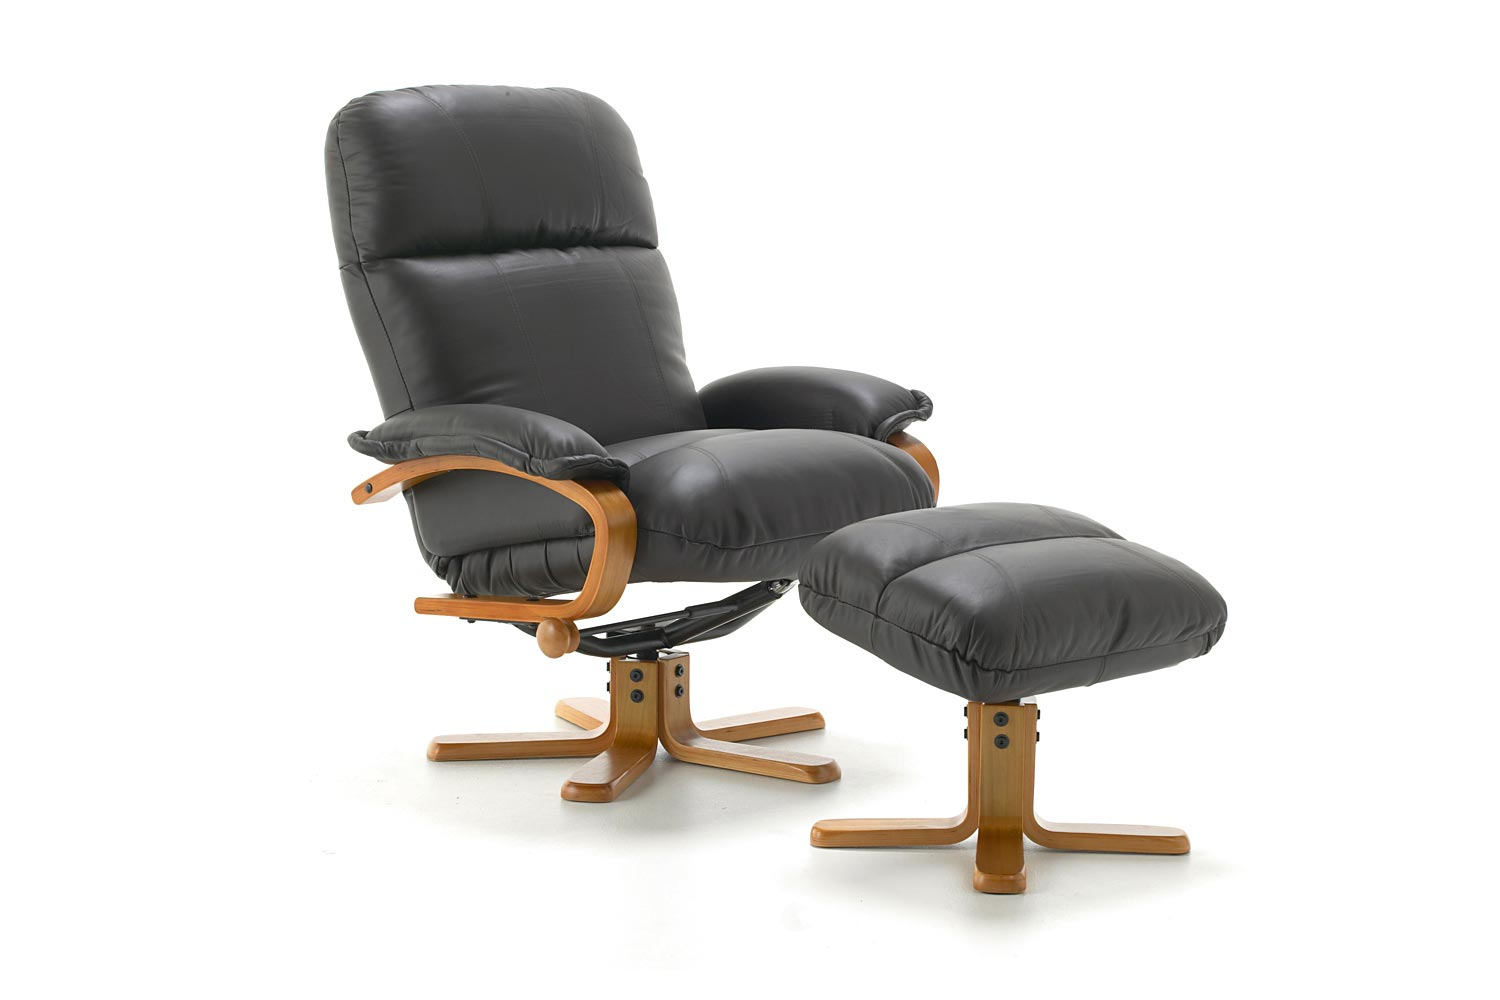 office recliners. Office Recliners P